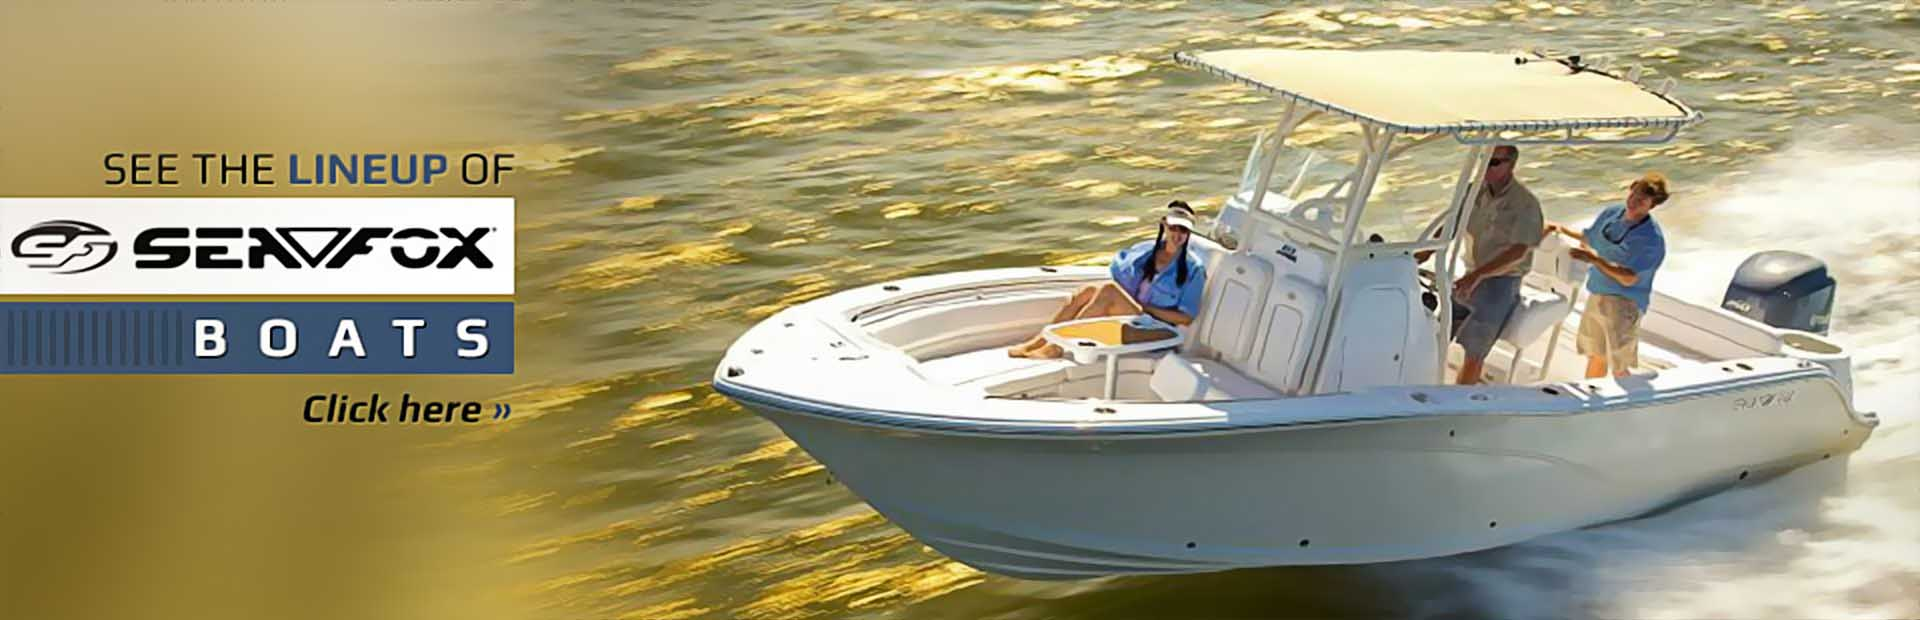 Sea Fox Boats: Click here to view the showcase!